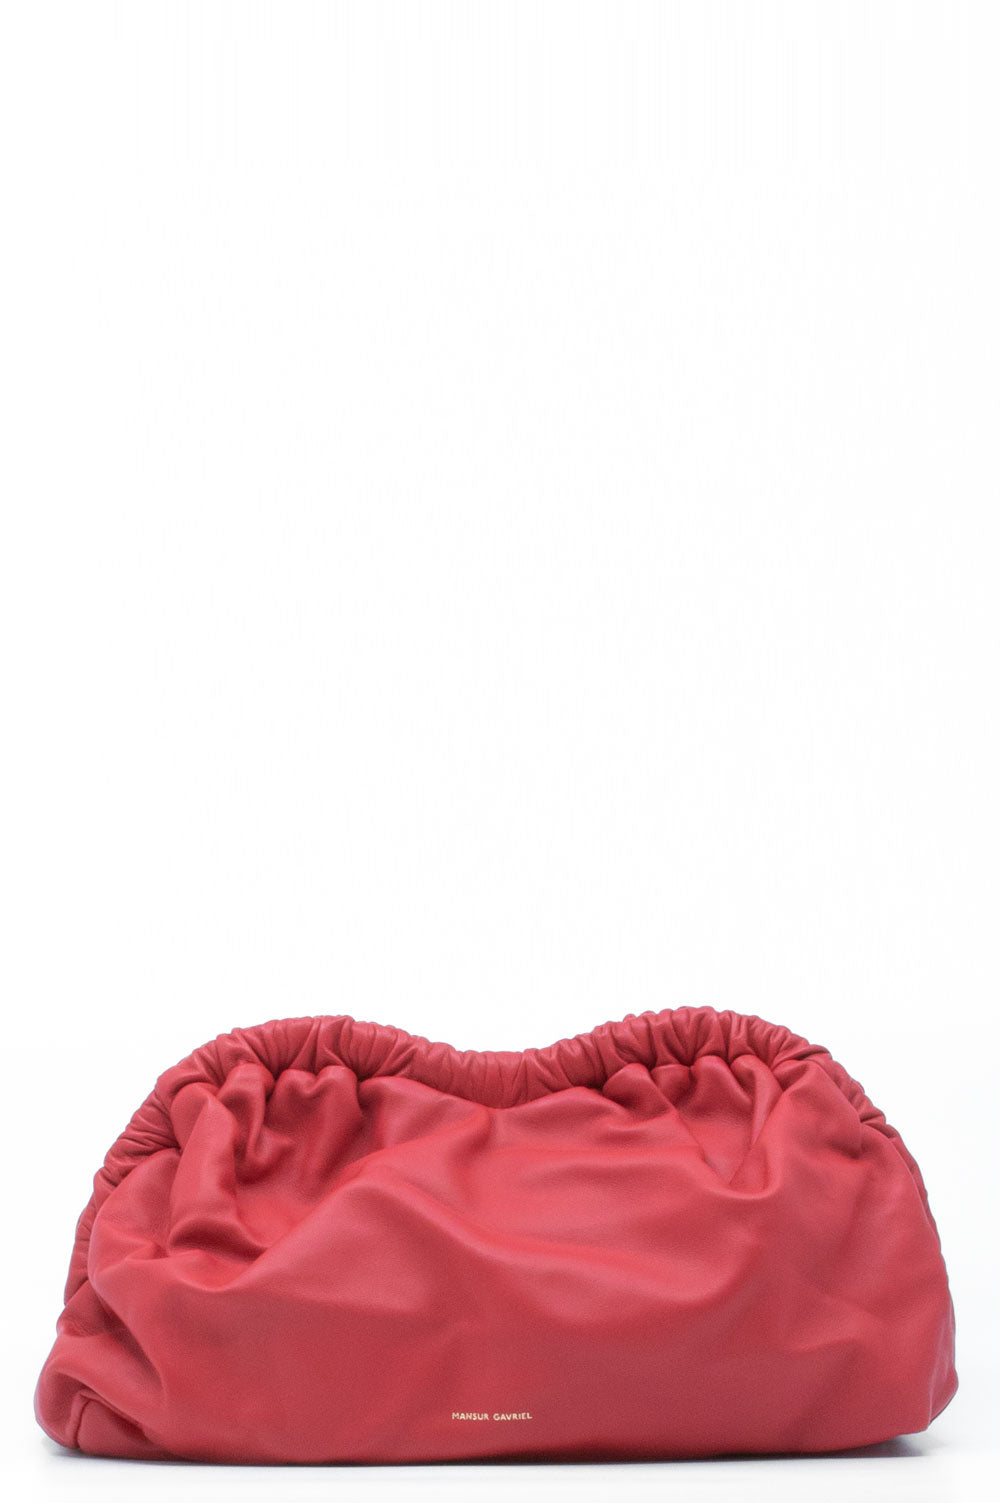 Mansur Gavriel Clutch in rot.